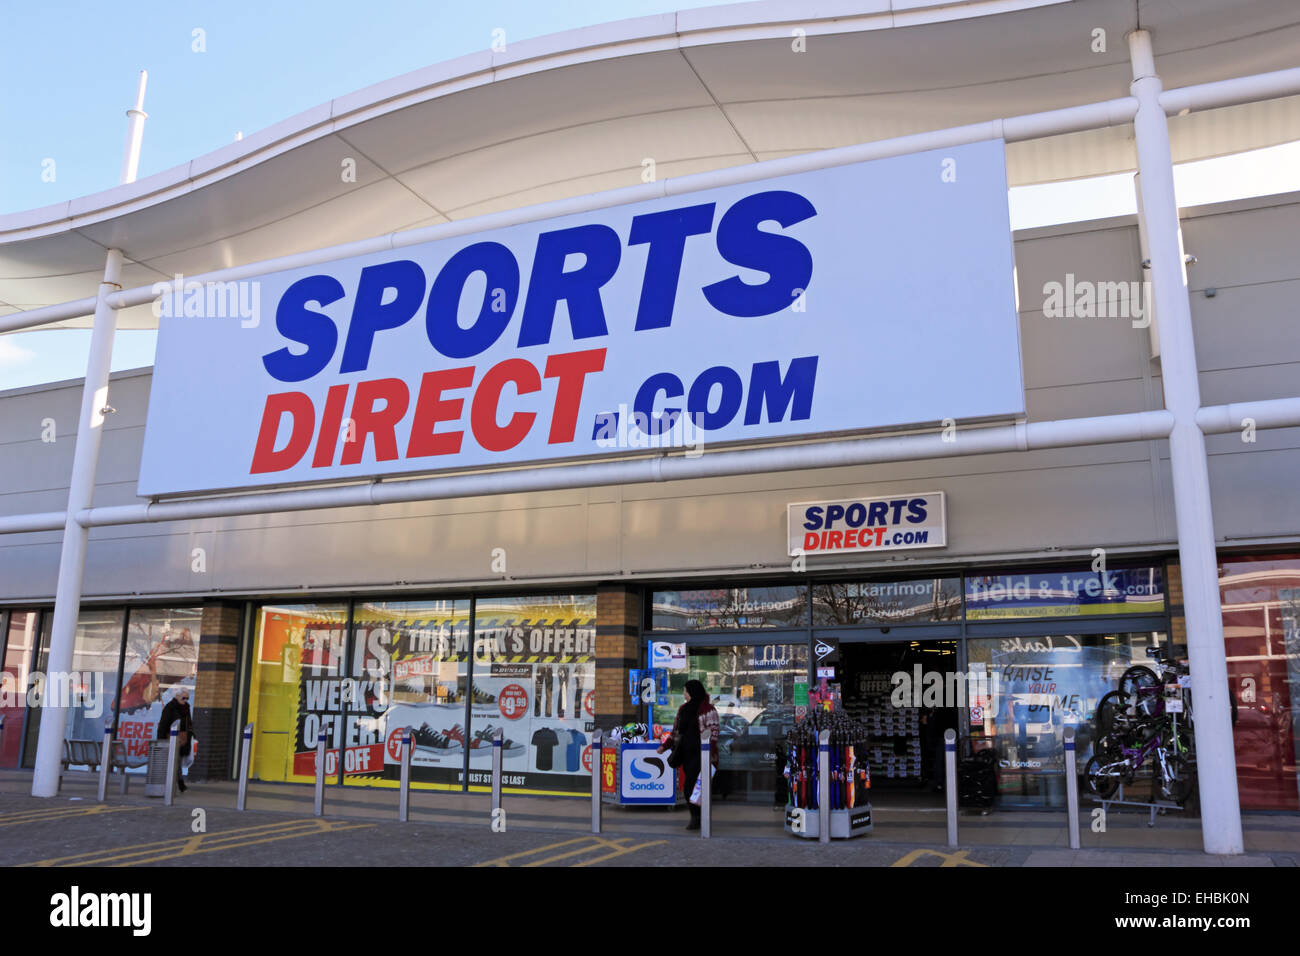 Find the closest DICK'S Sporting Goods near you. Browse DICK'S Store Locator to find hours, locations and in-store services for all your sporting goods needs.